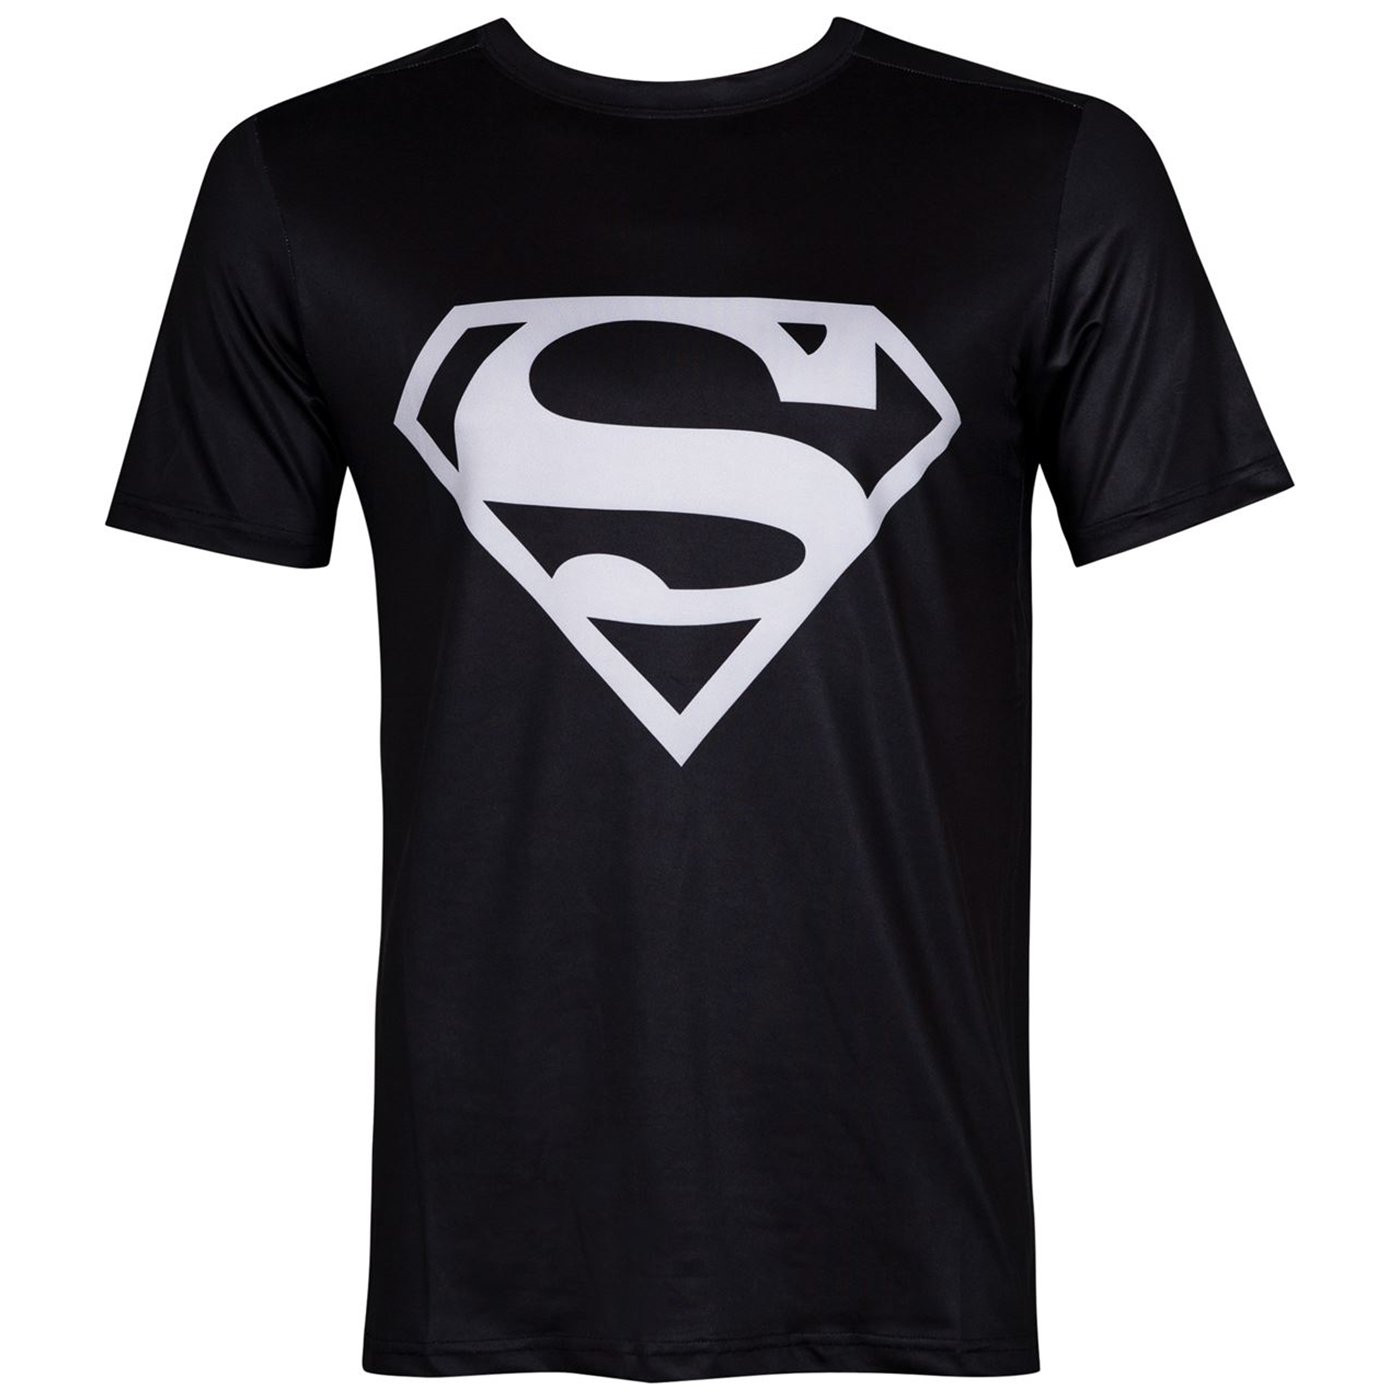 Superman Silver Logo Performance Athletic Adult T-Shirt